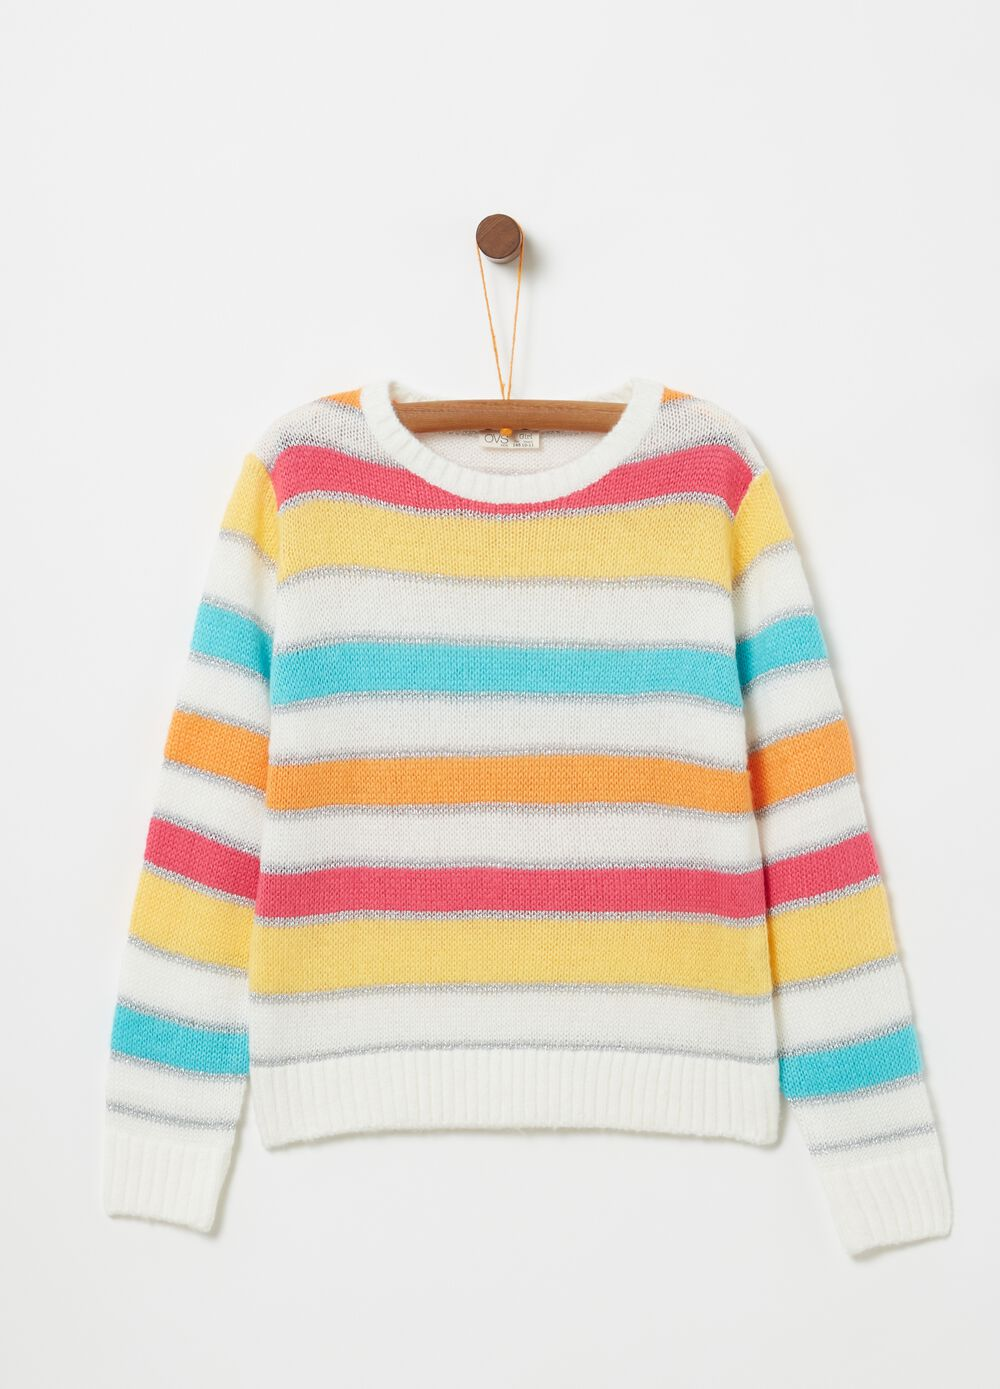 Knitted top with striped pattern